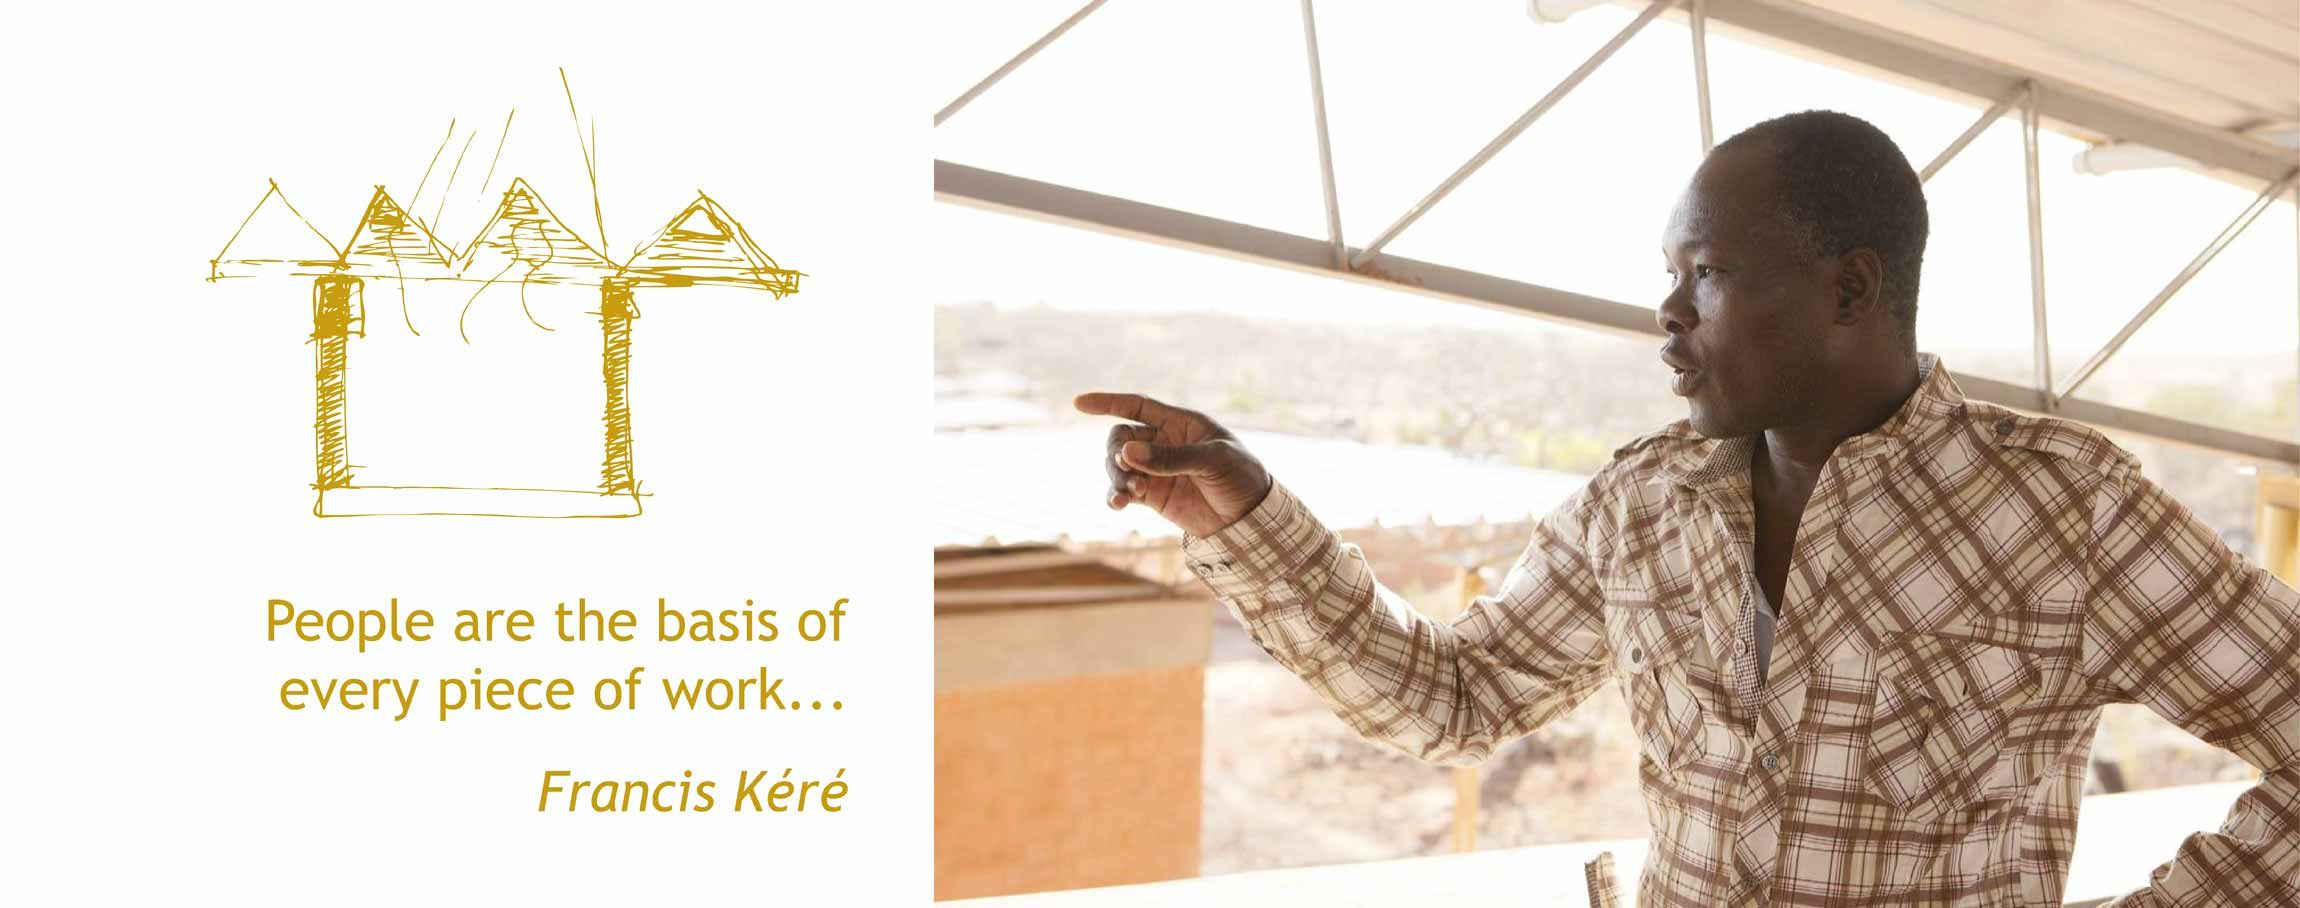 Diébédo Francis Kéré and his architectural firm design buildings that are good for the environment — and those who use them.